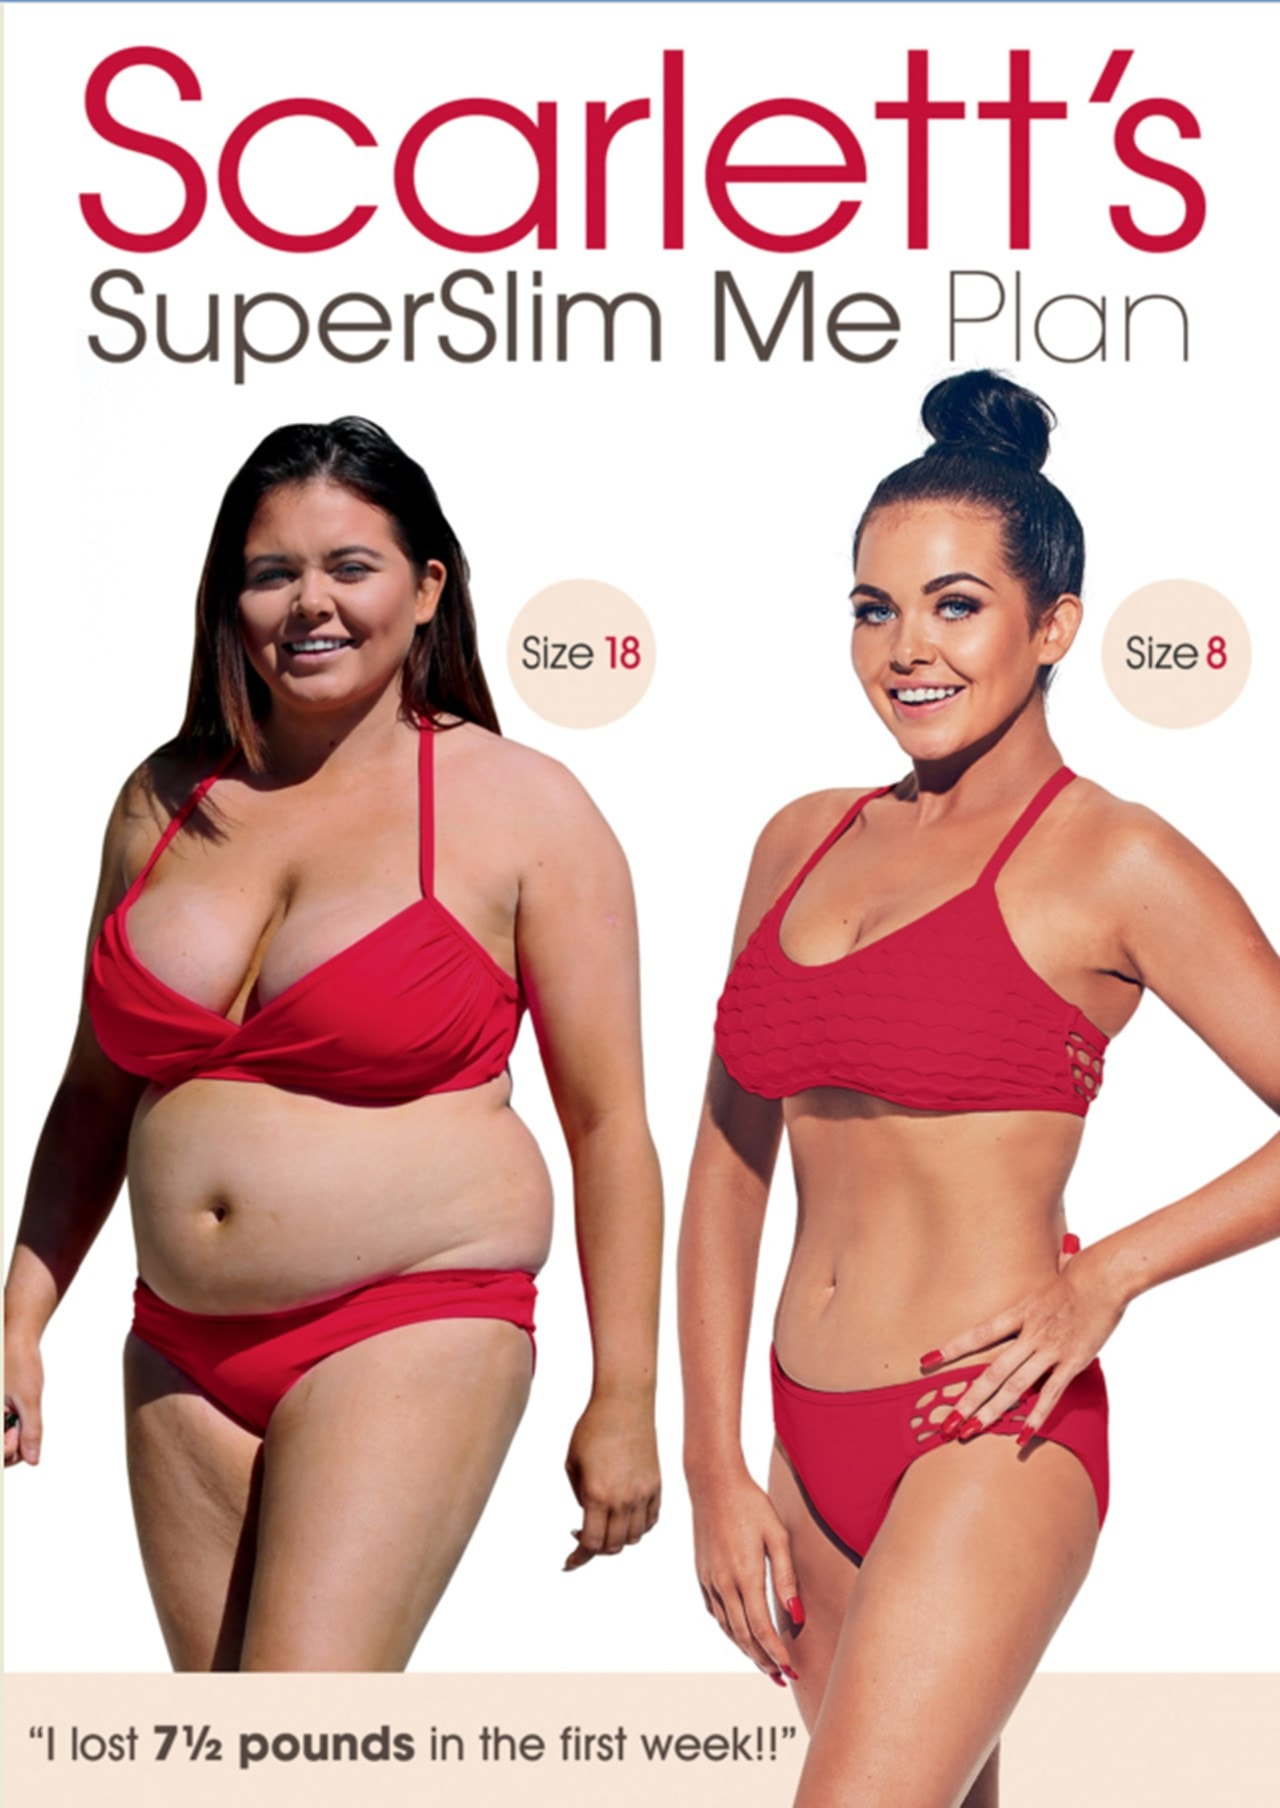 Scarlett's Superslim Me Plan - 1